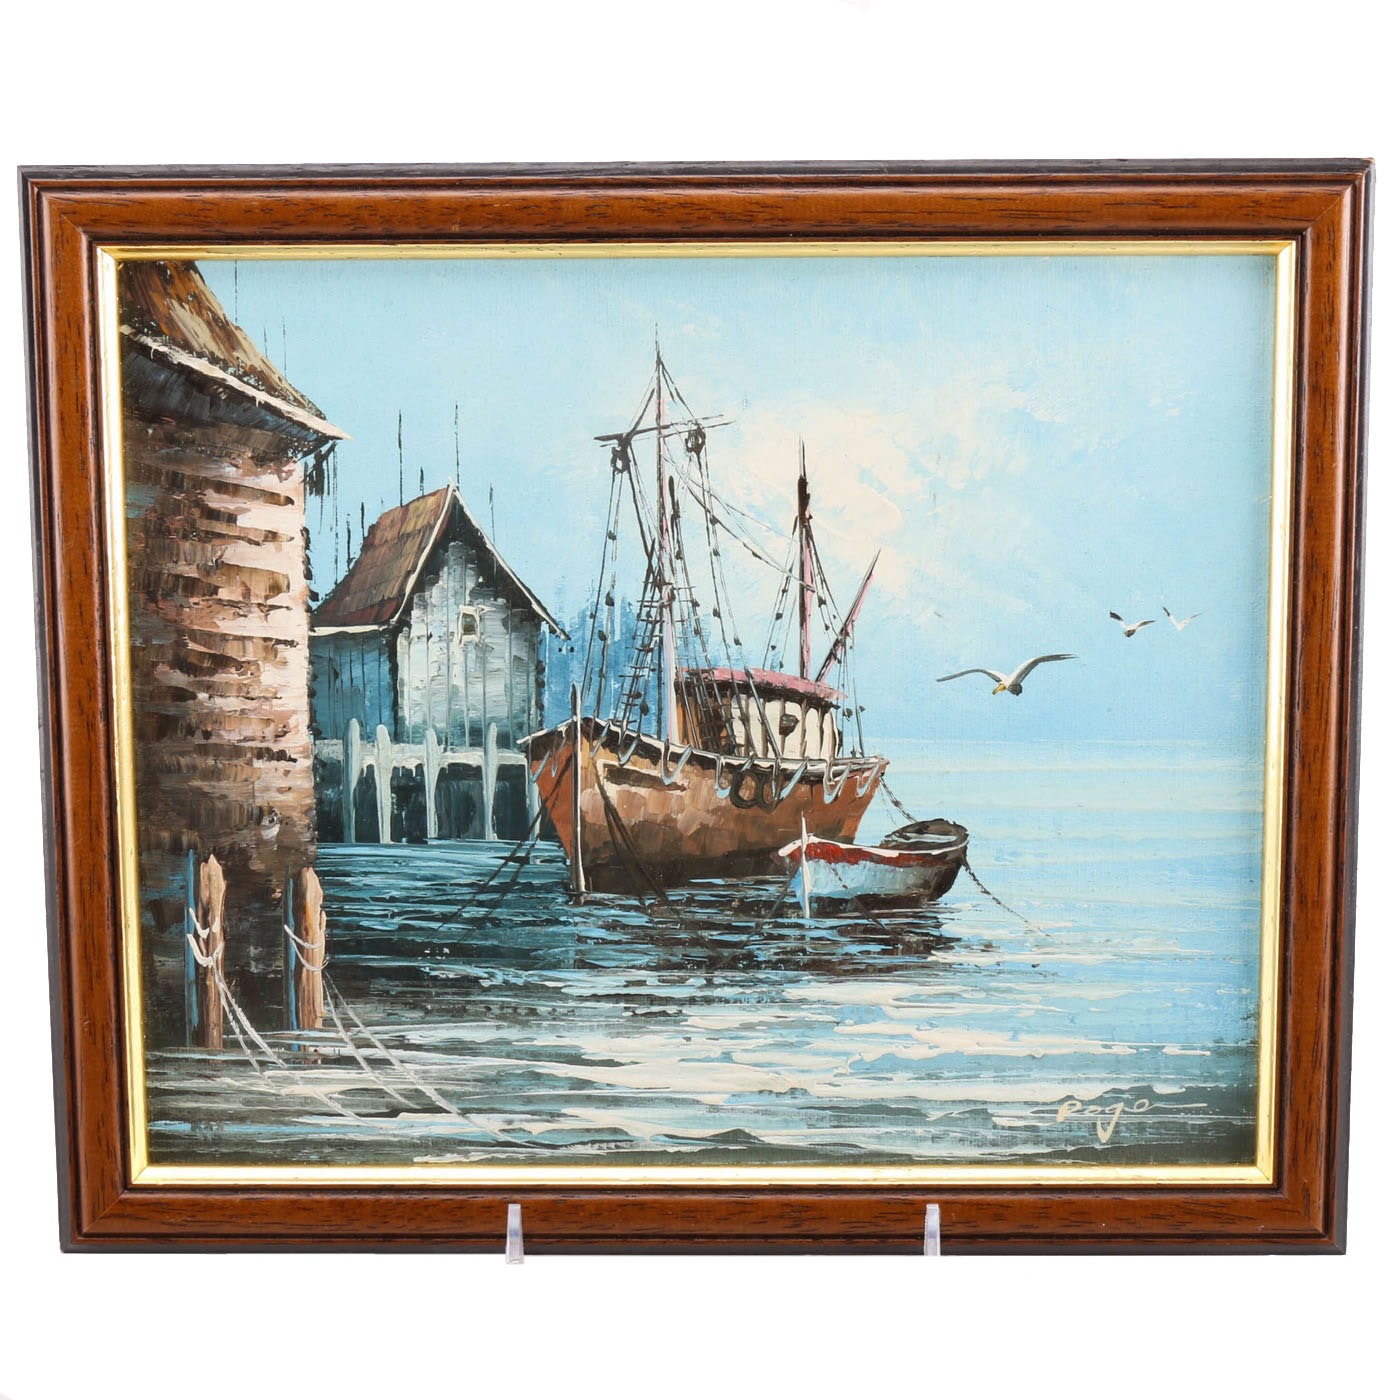 Roge Signed Original Oil Painting of a Harbor